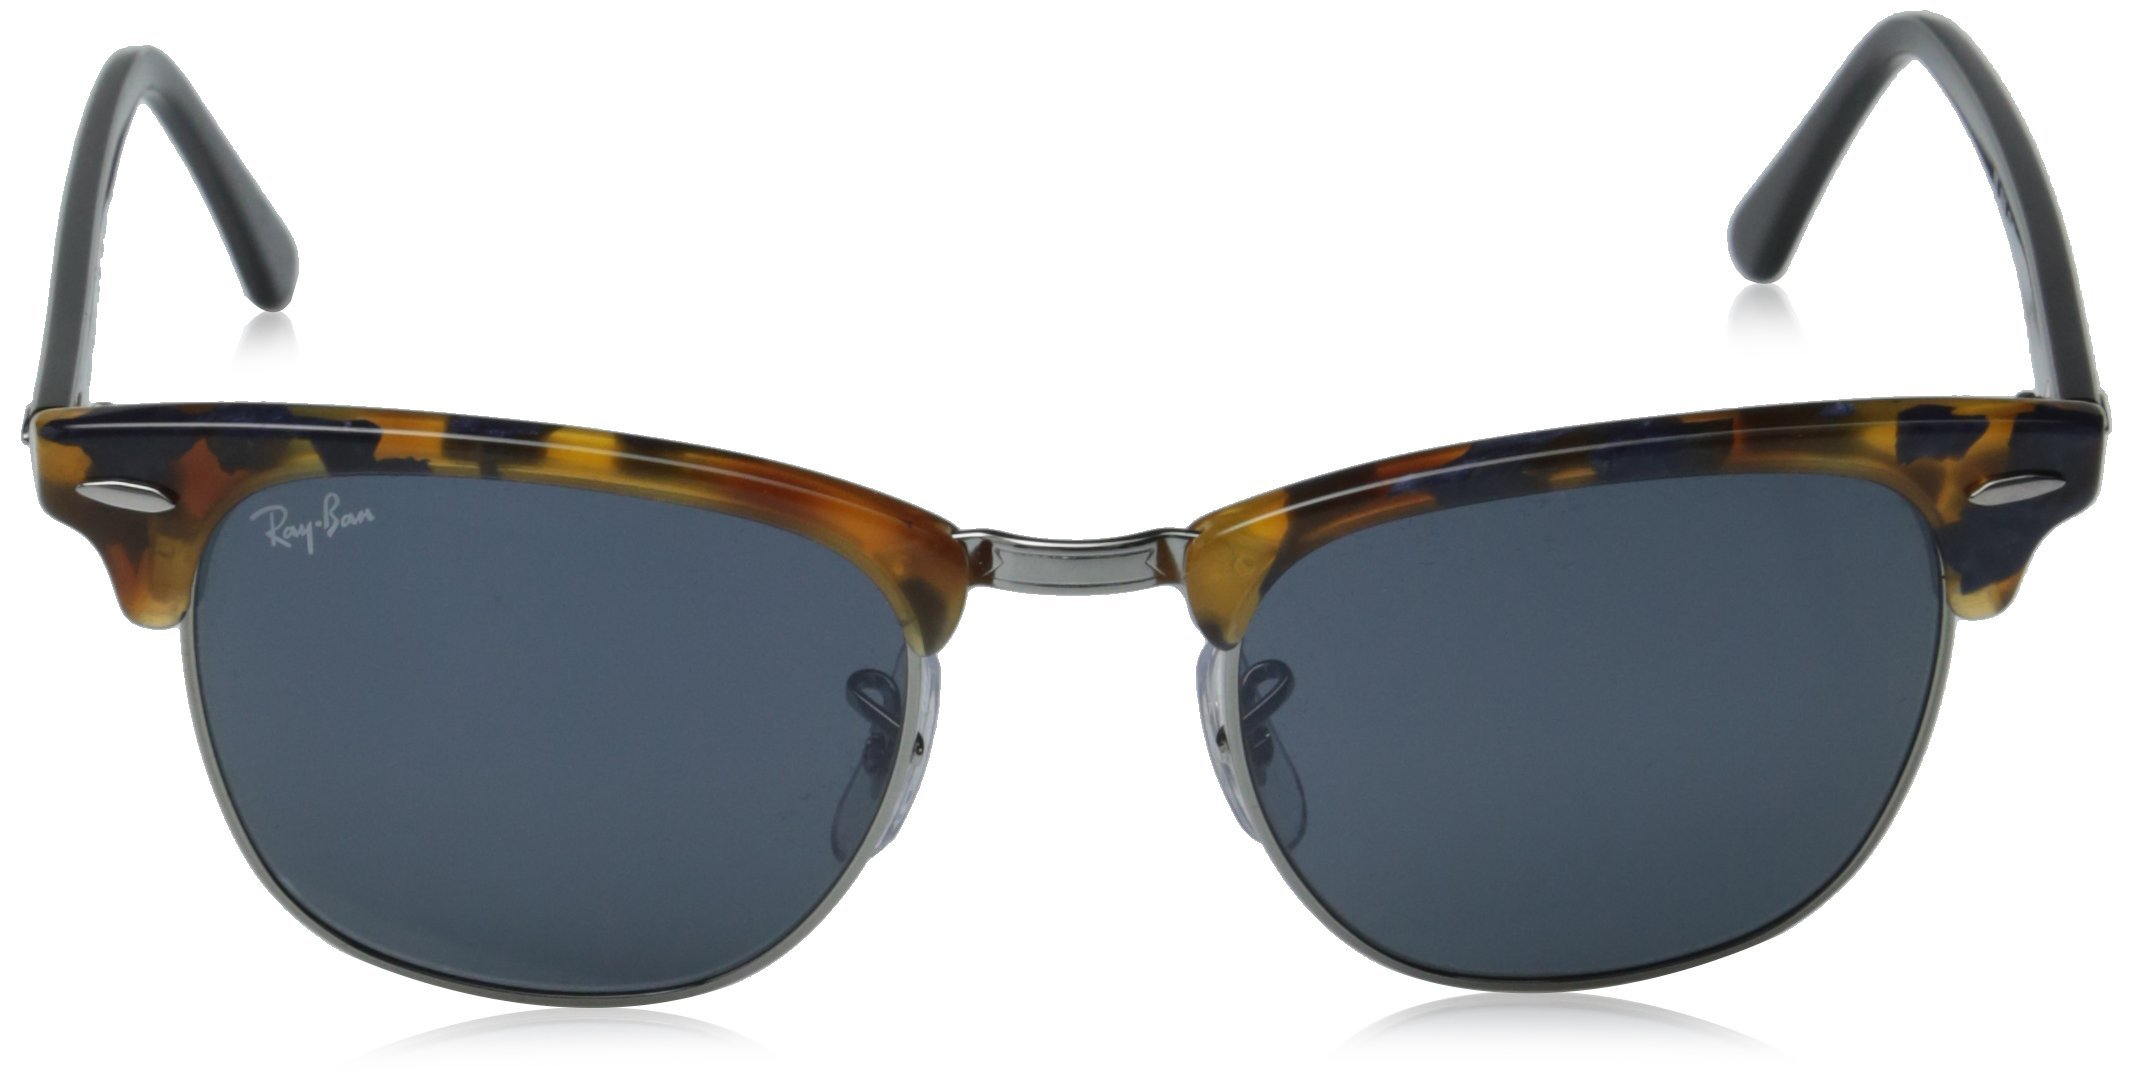 Ray-Ban CLUBMASTER - SPOTTED BLUE HAVANA Frame GREY Lenses 49mm Non-Polarized by Ray-Ban (Image #2)